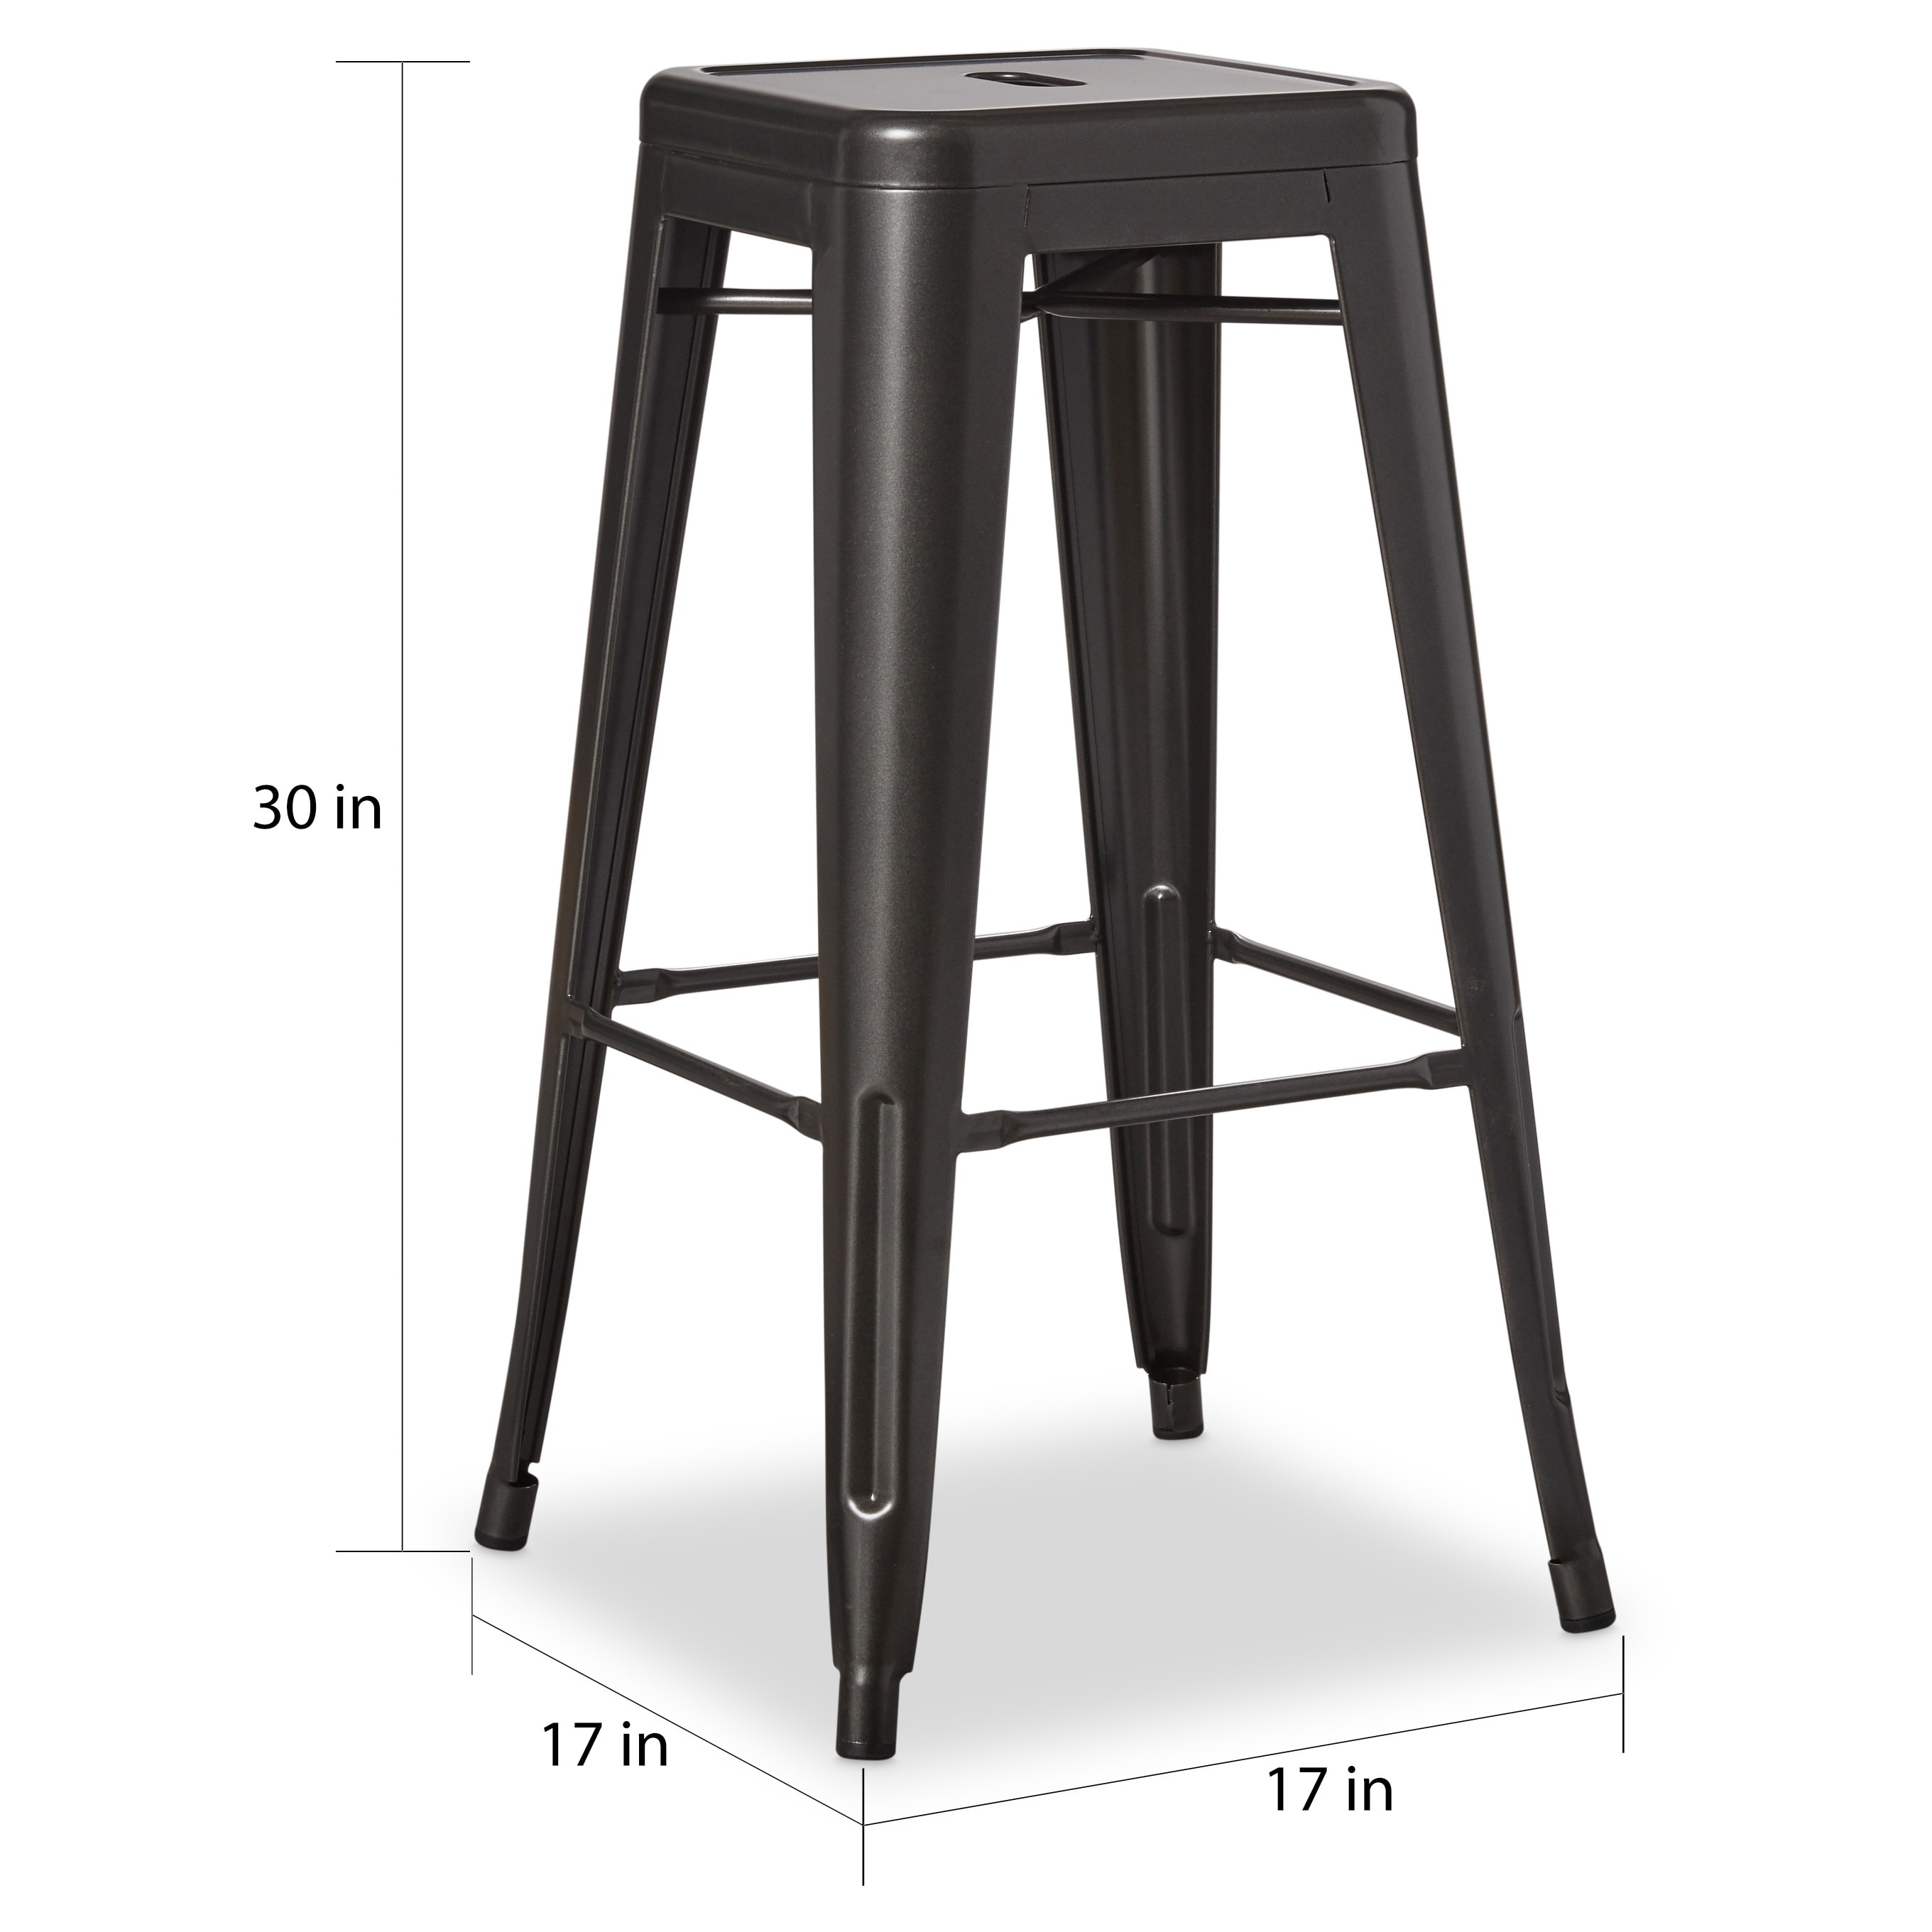 Shop tabouret 30 inch charcoal grey metal bar stools set of 2 free shipping today overstock com 7213084